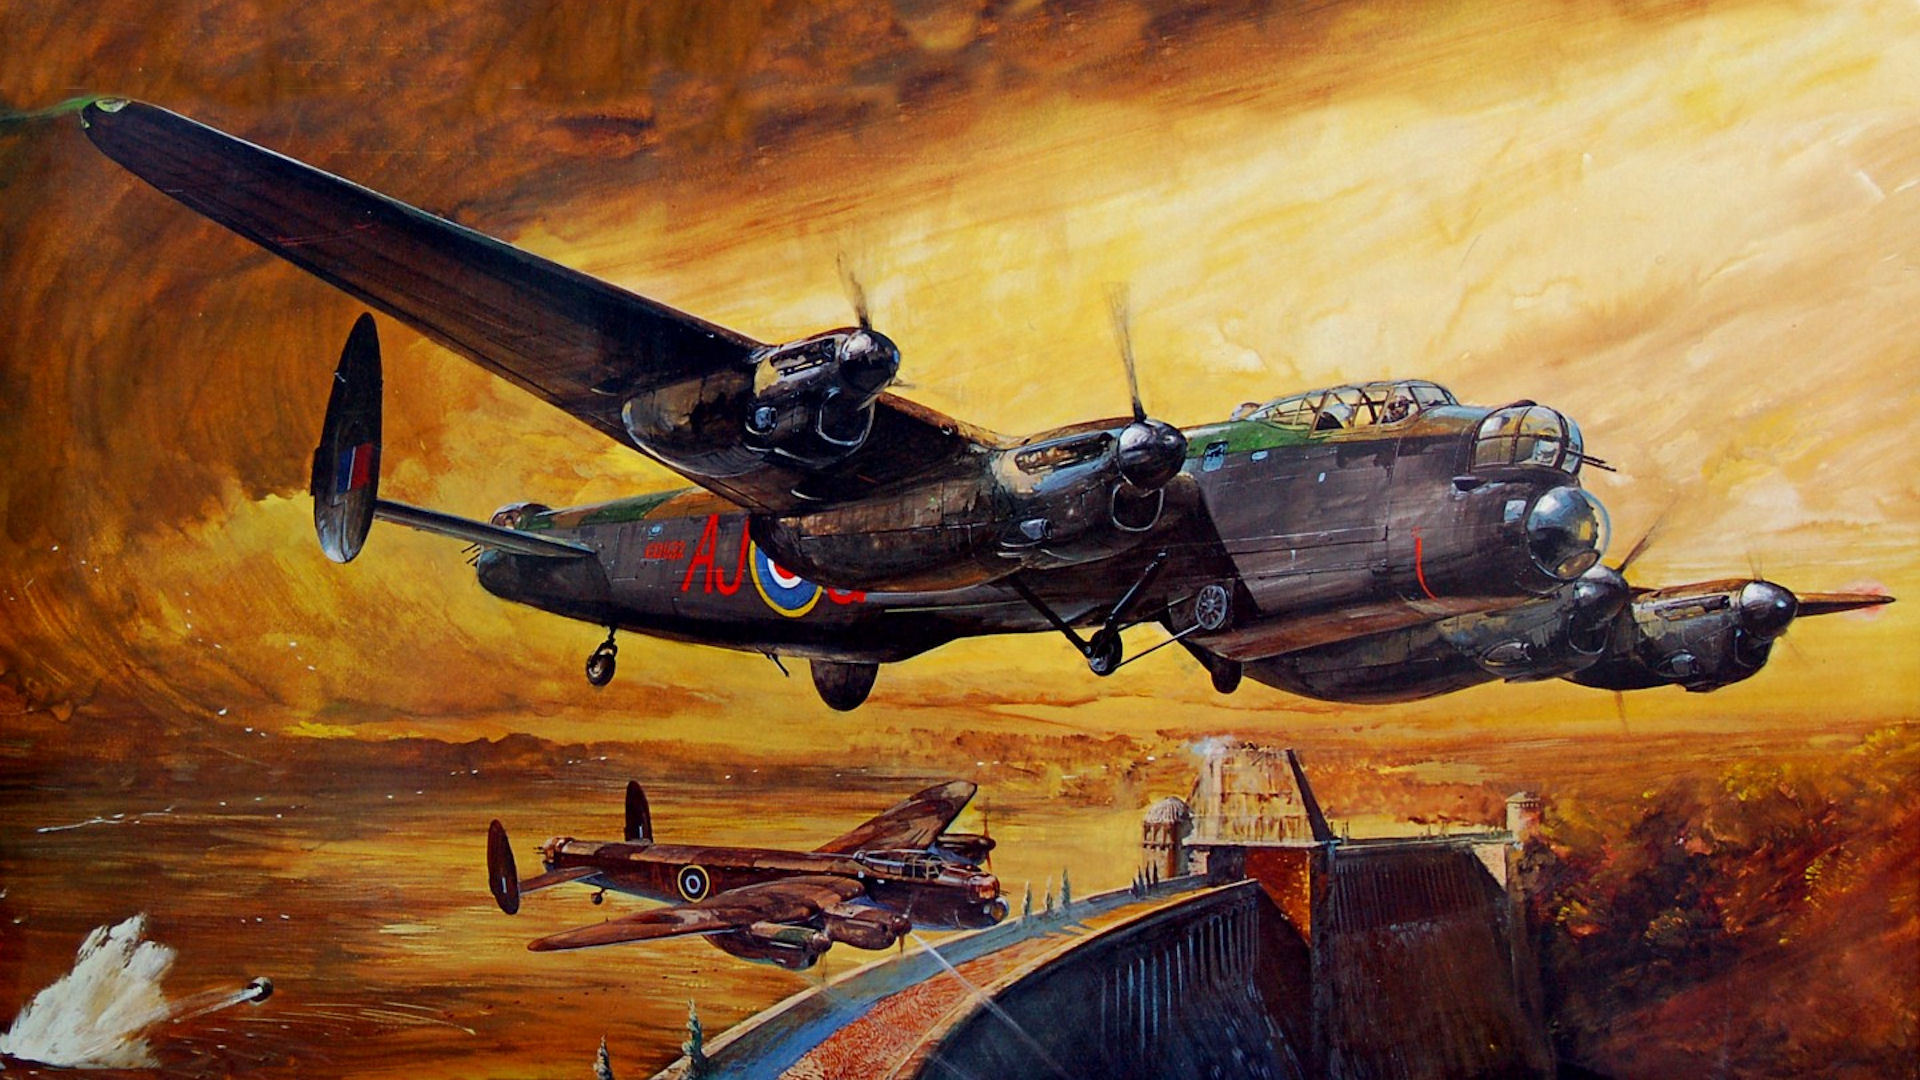 Fonds dcran Lancaster tous les wallpapers Lancaster 1920x1080